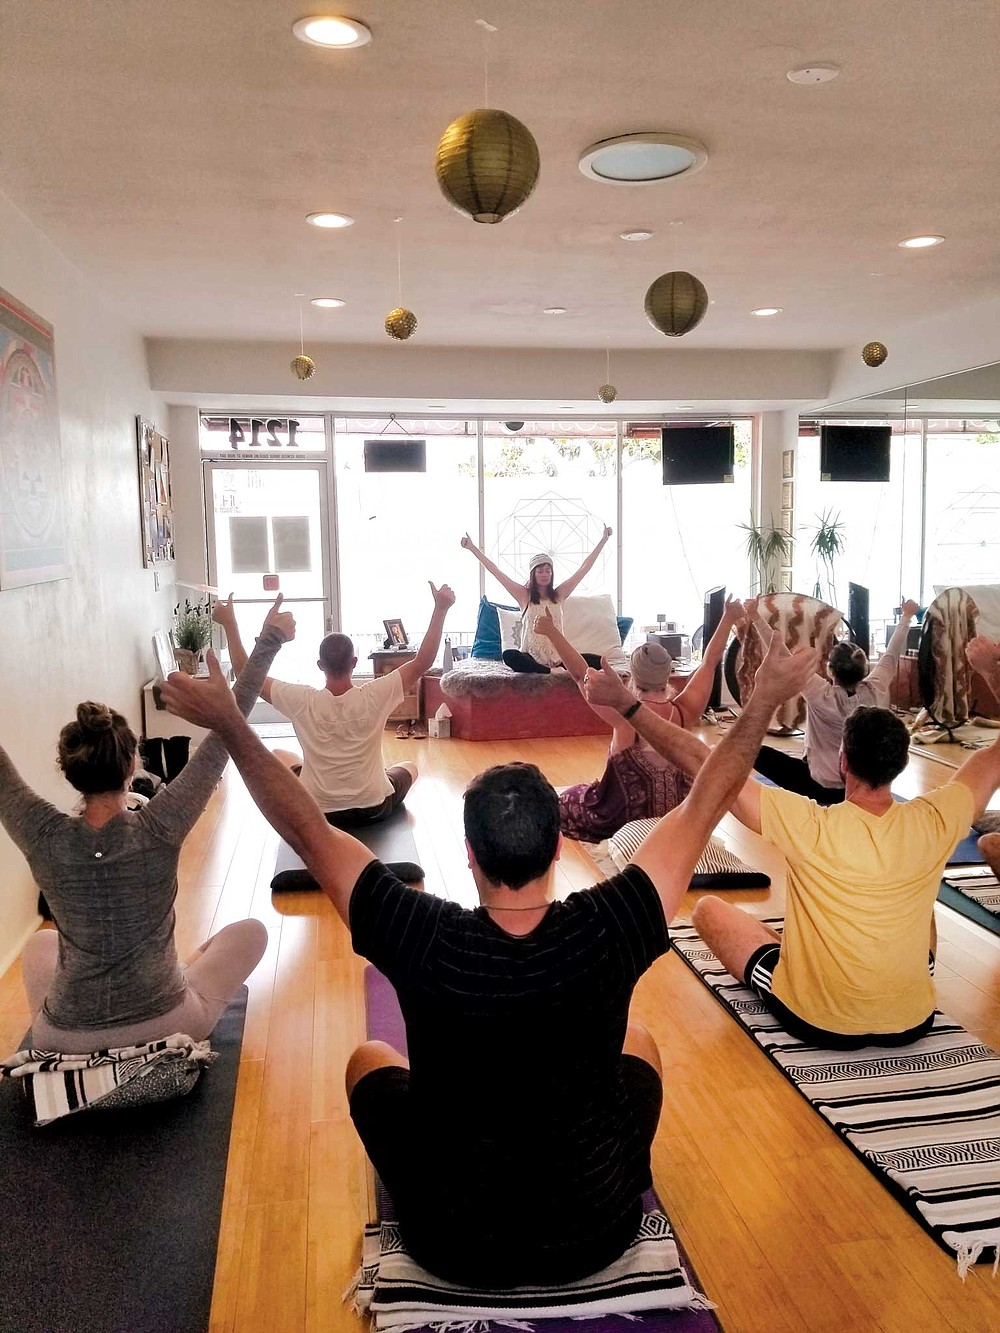 In Golden Hill, Cosmic Flow offers a free Kundalini Yoga Community Class every 2nd and 4th Saturday at 6 pm.